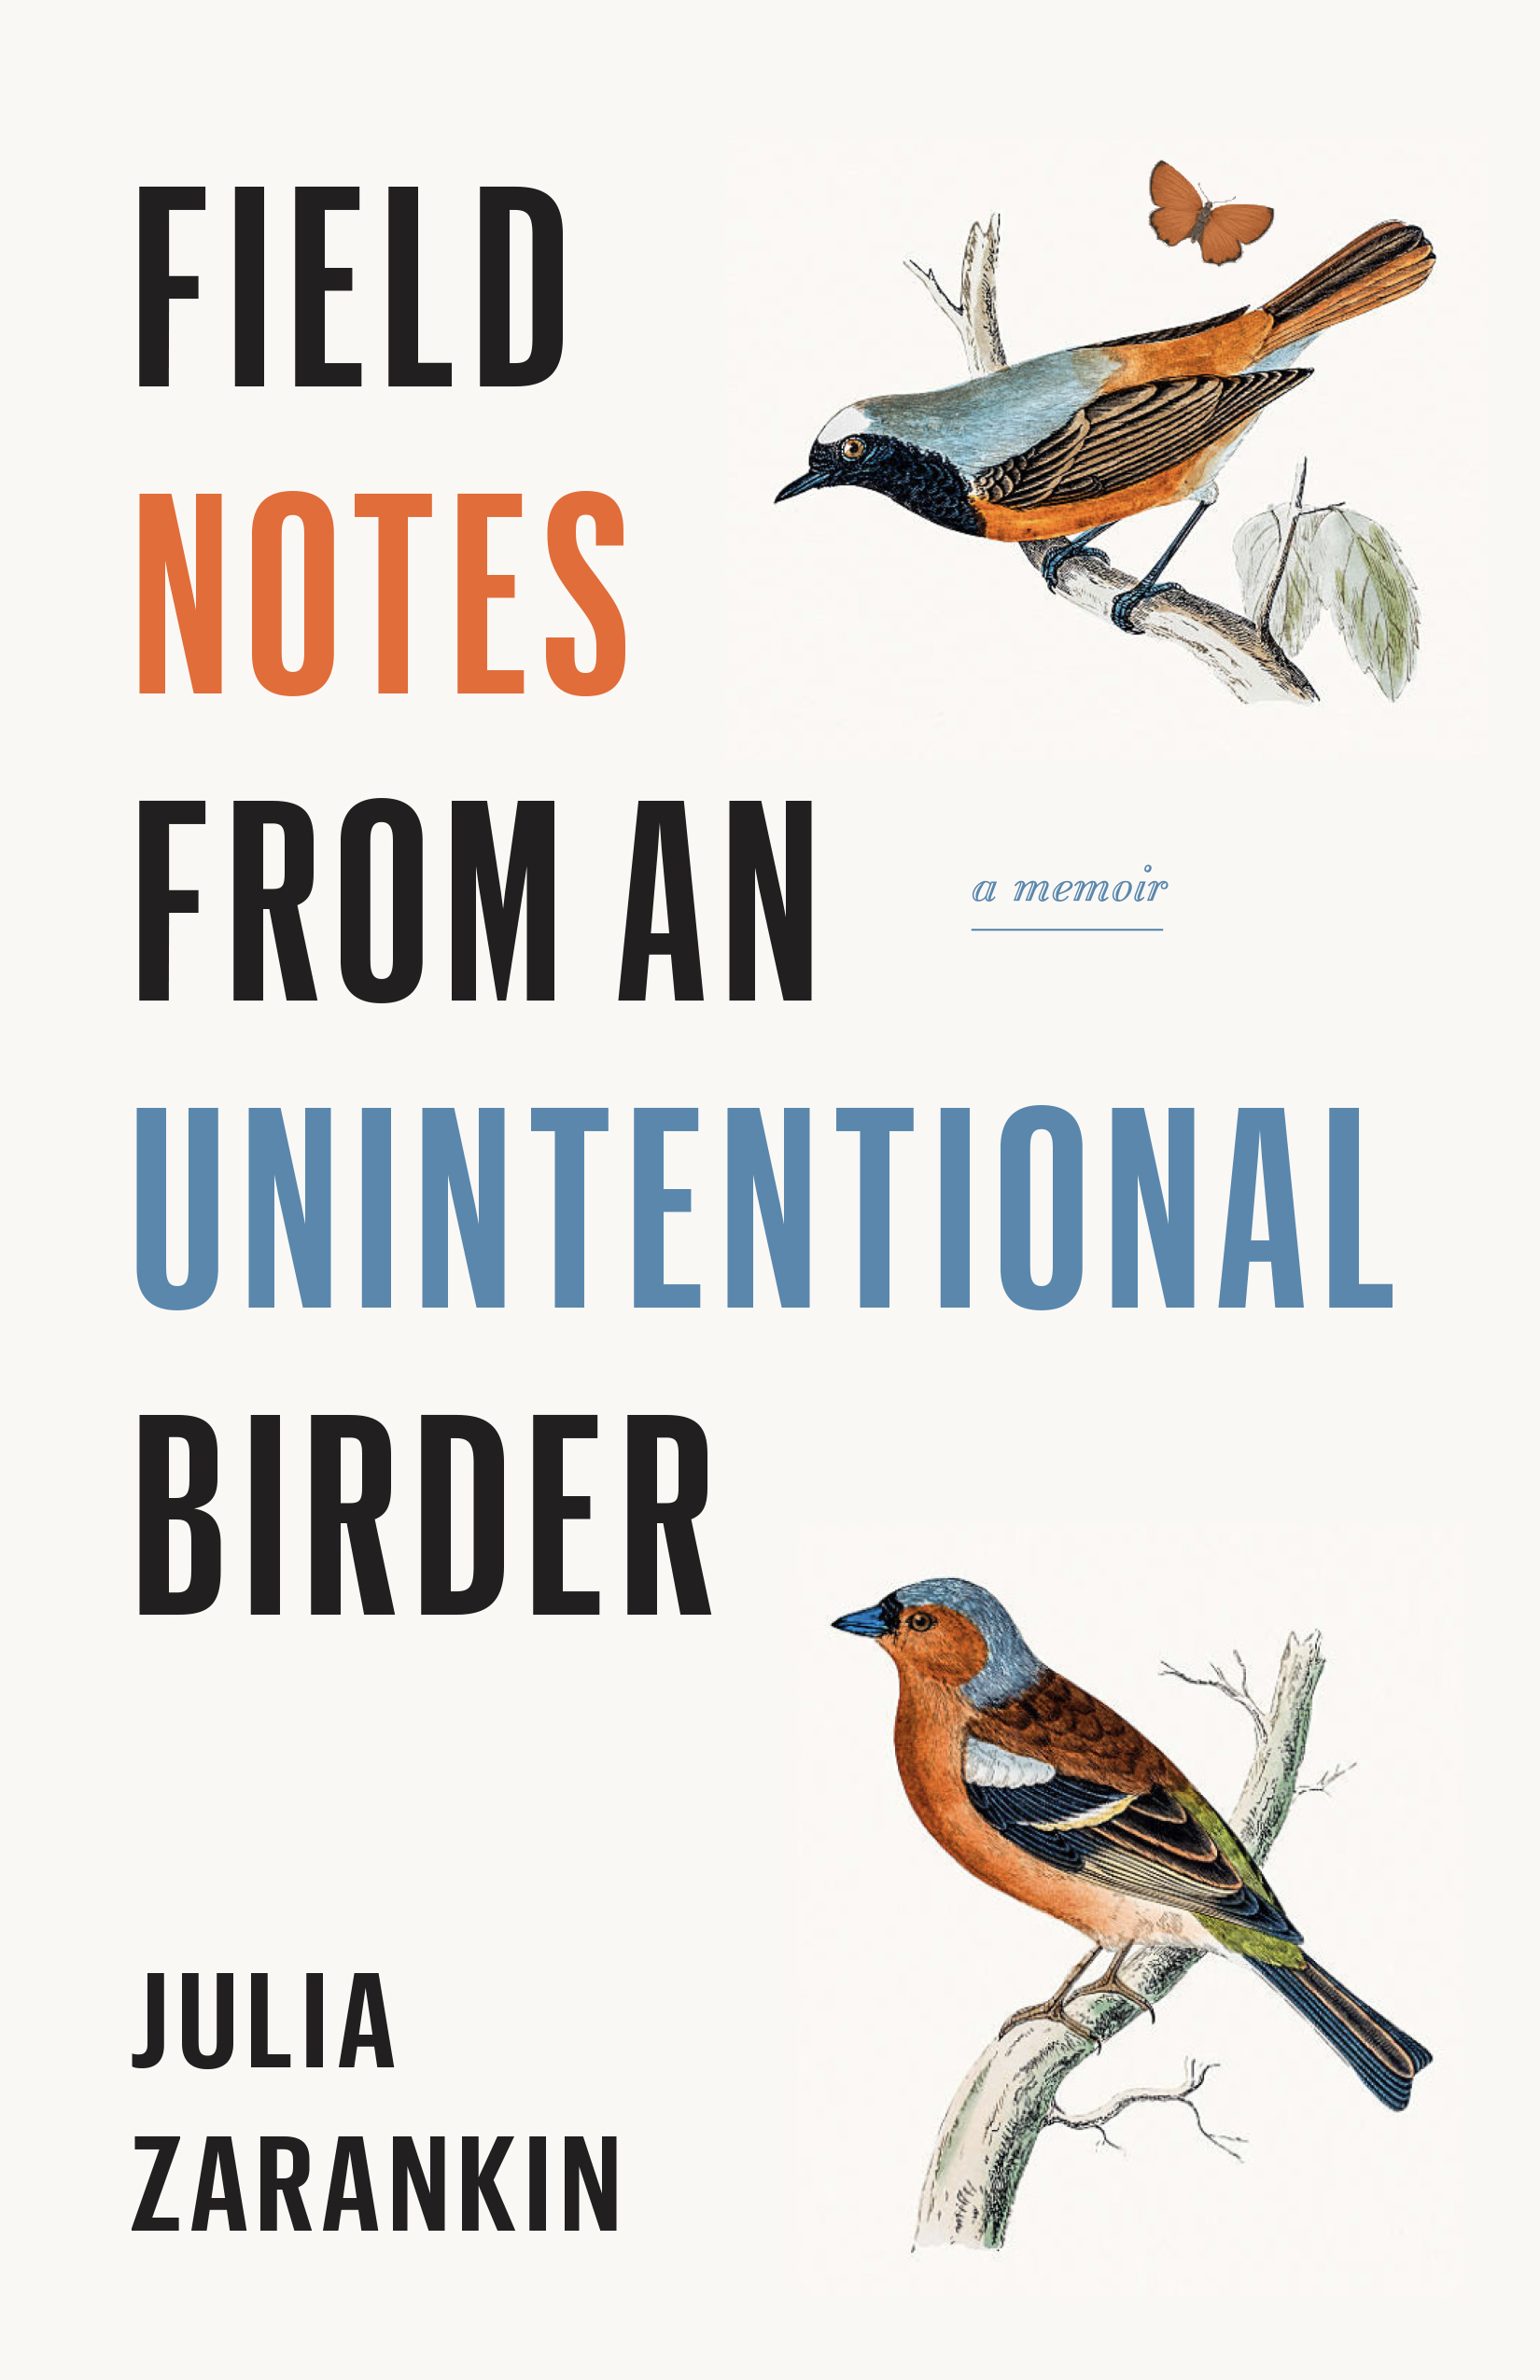 Field Notes from an Unintentional Birder